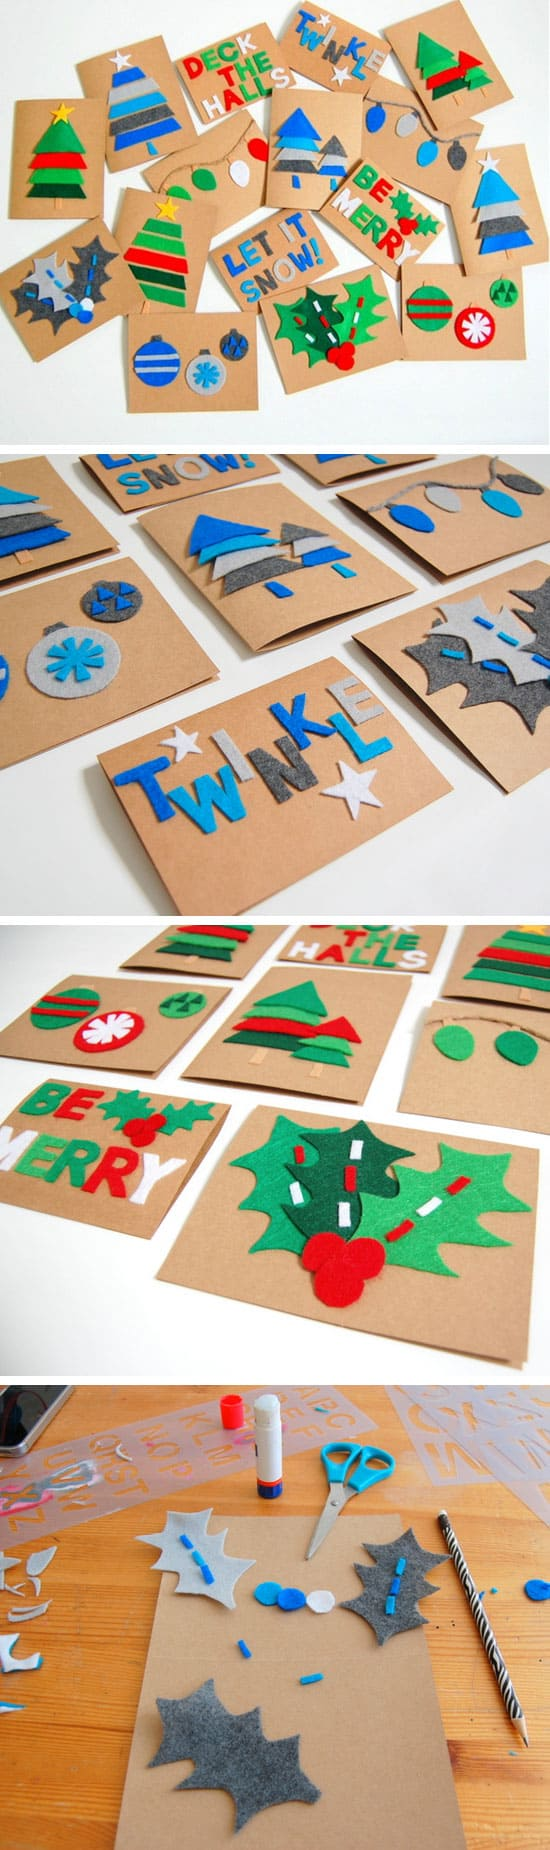 Make Your Own Creative Christmas Cards This Winter-homestheitcs.net (13)